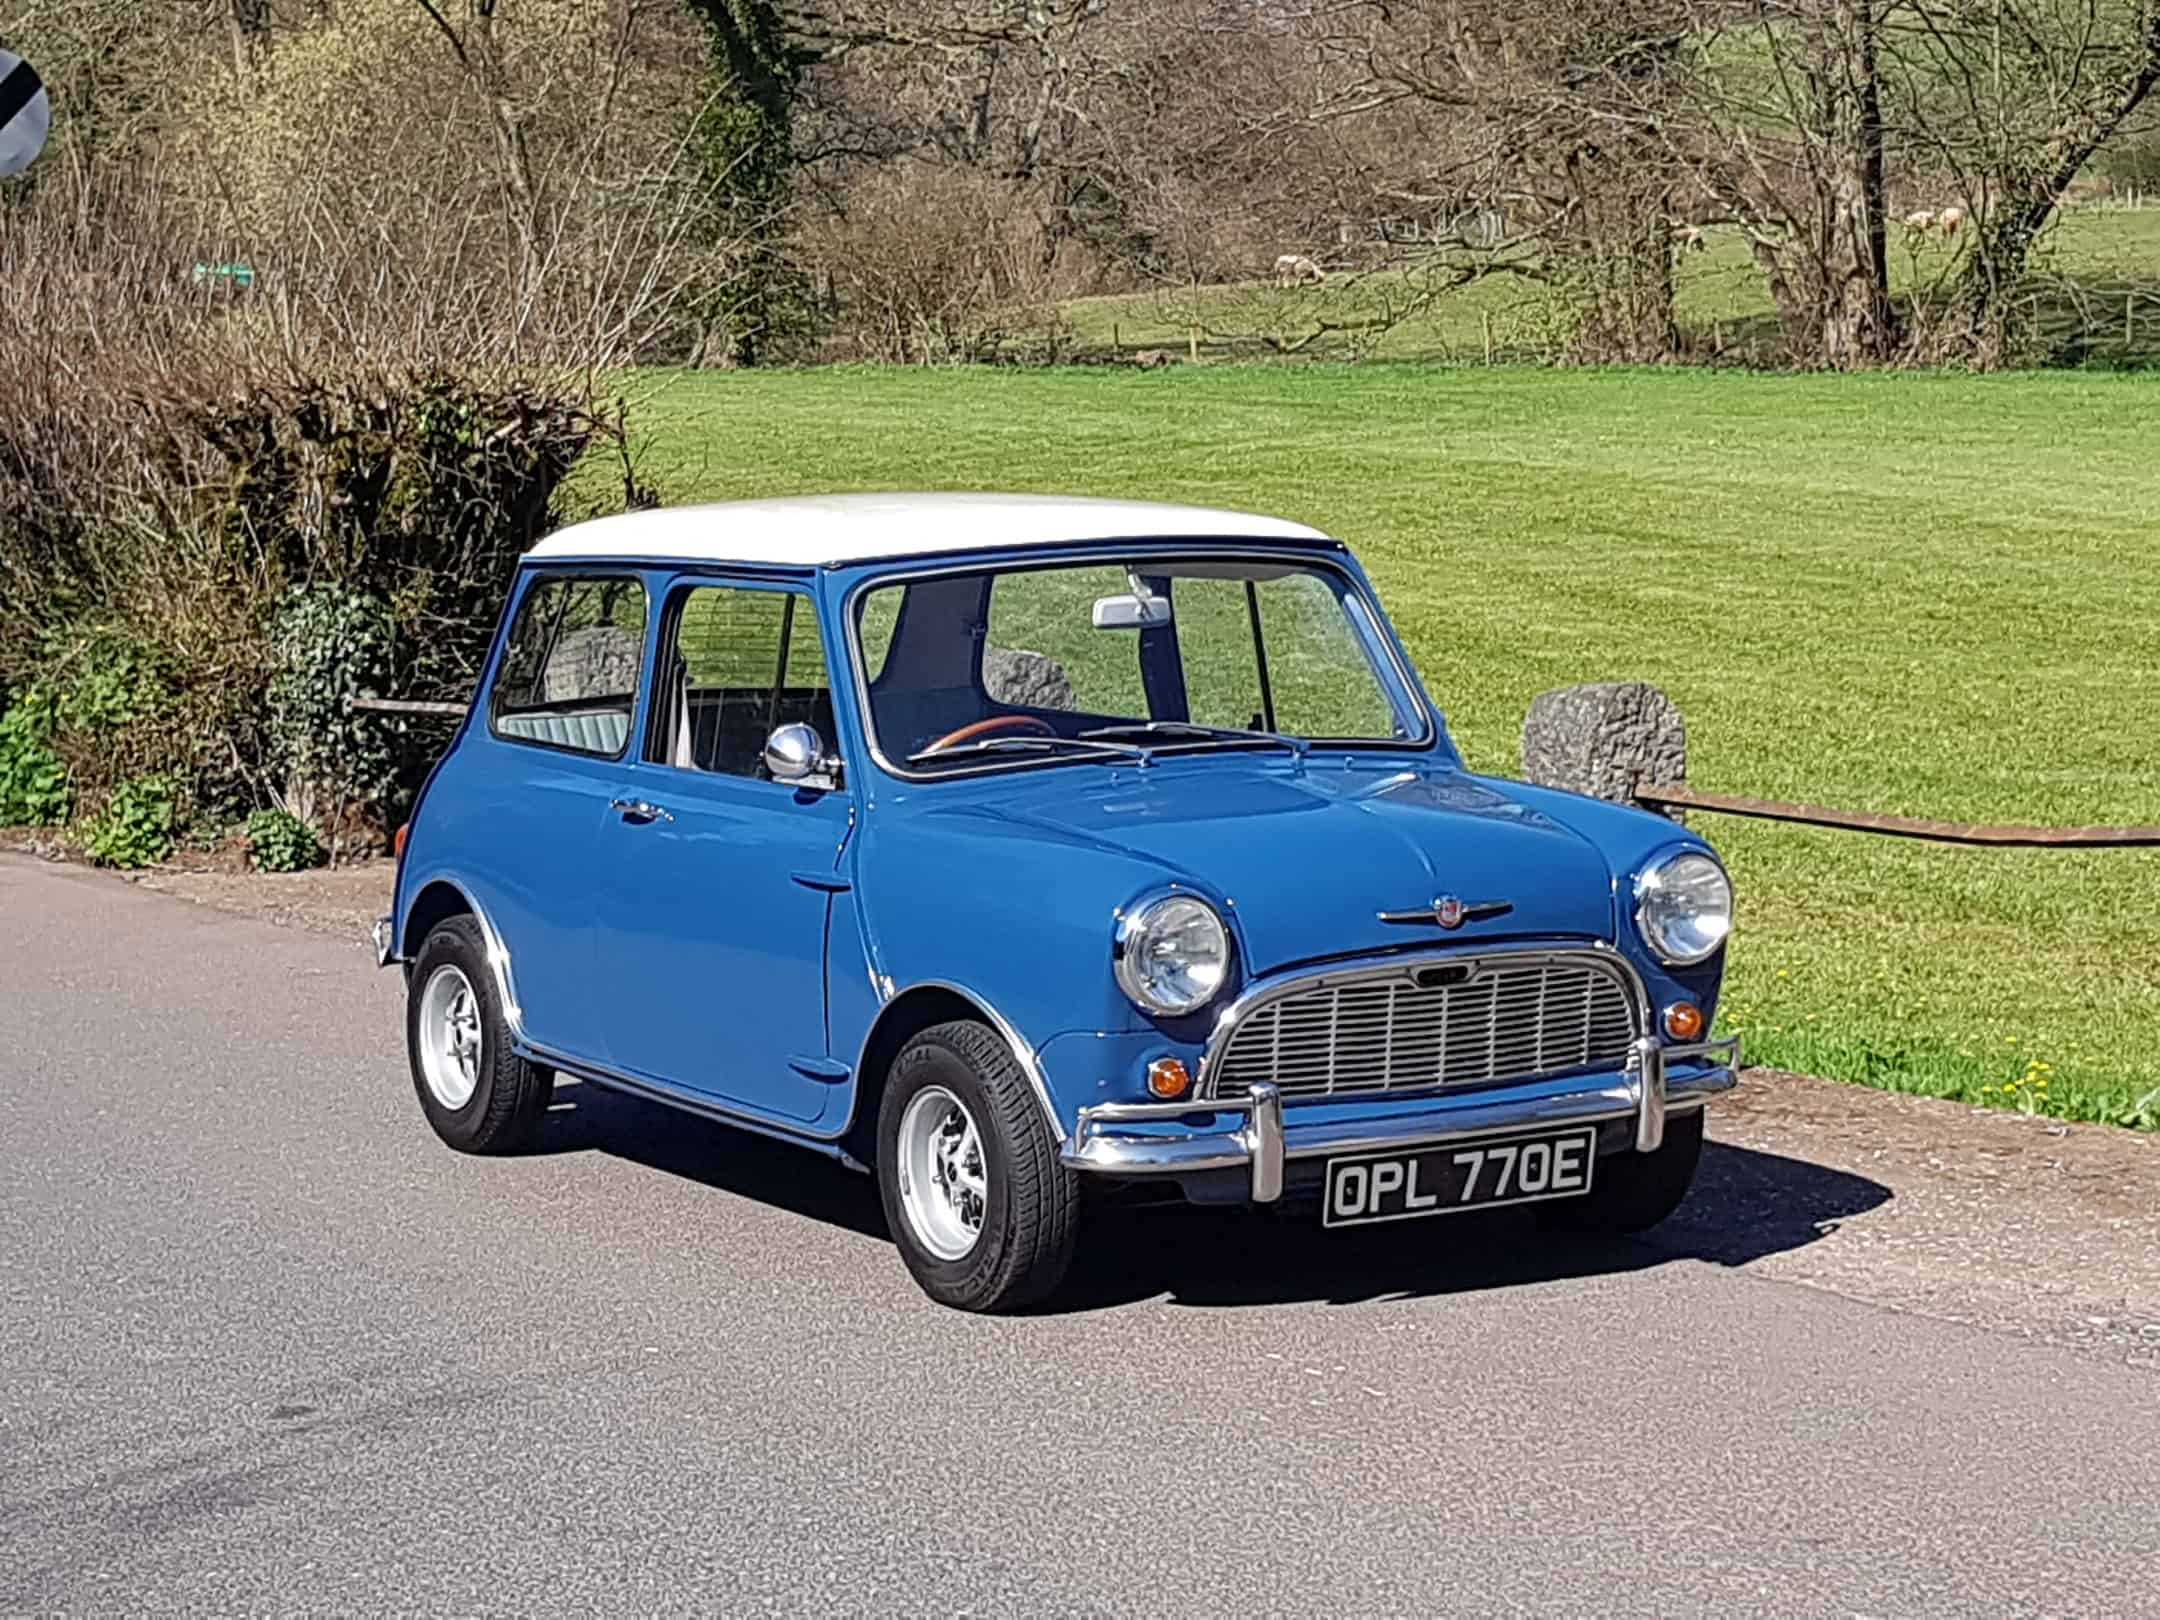 1967 Morris Mini MK 1 Super Deluxe In lovely condition.